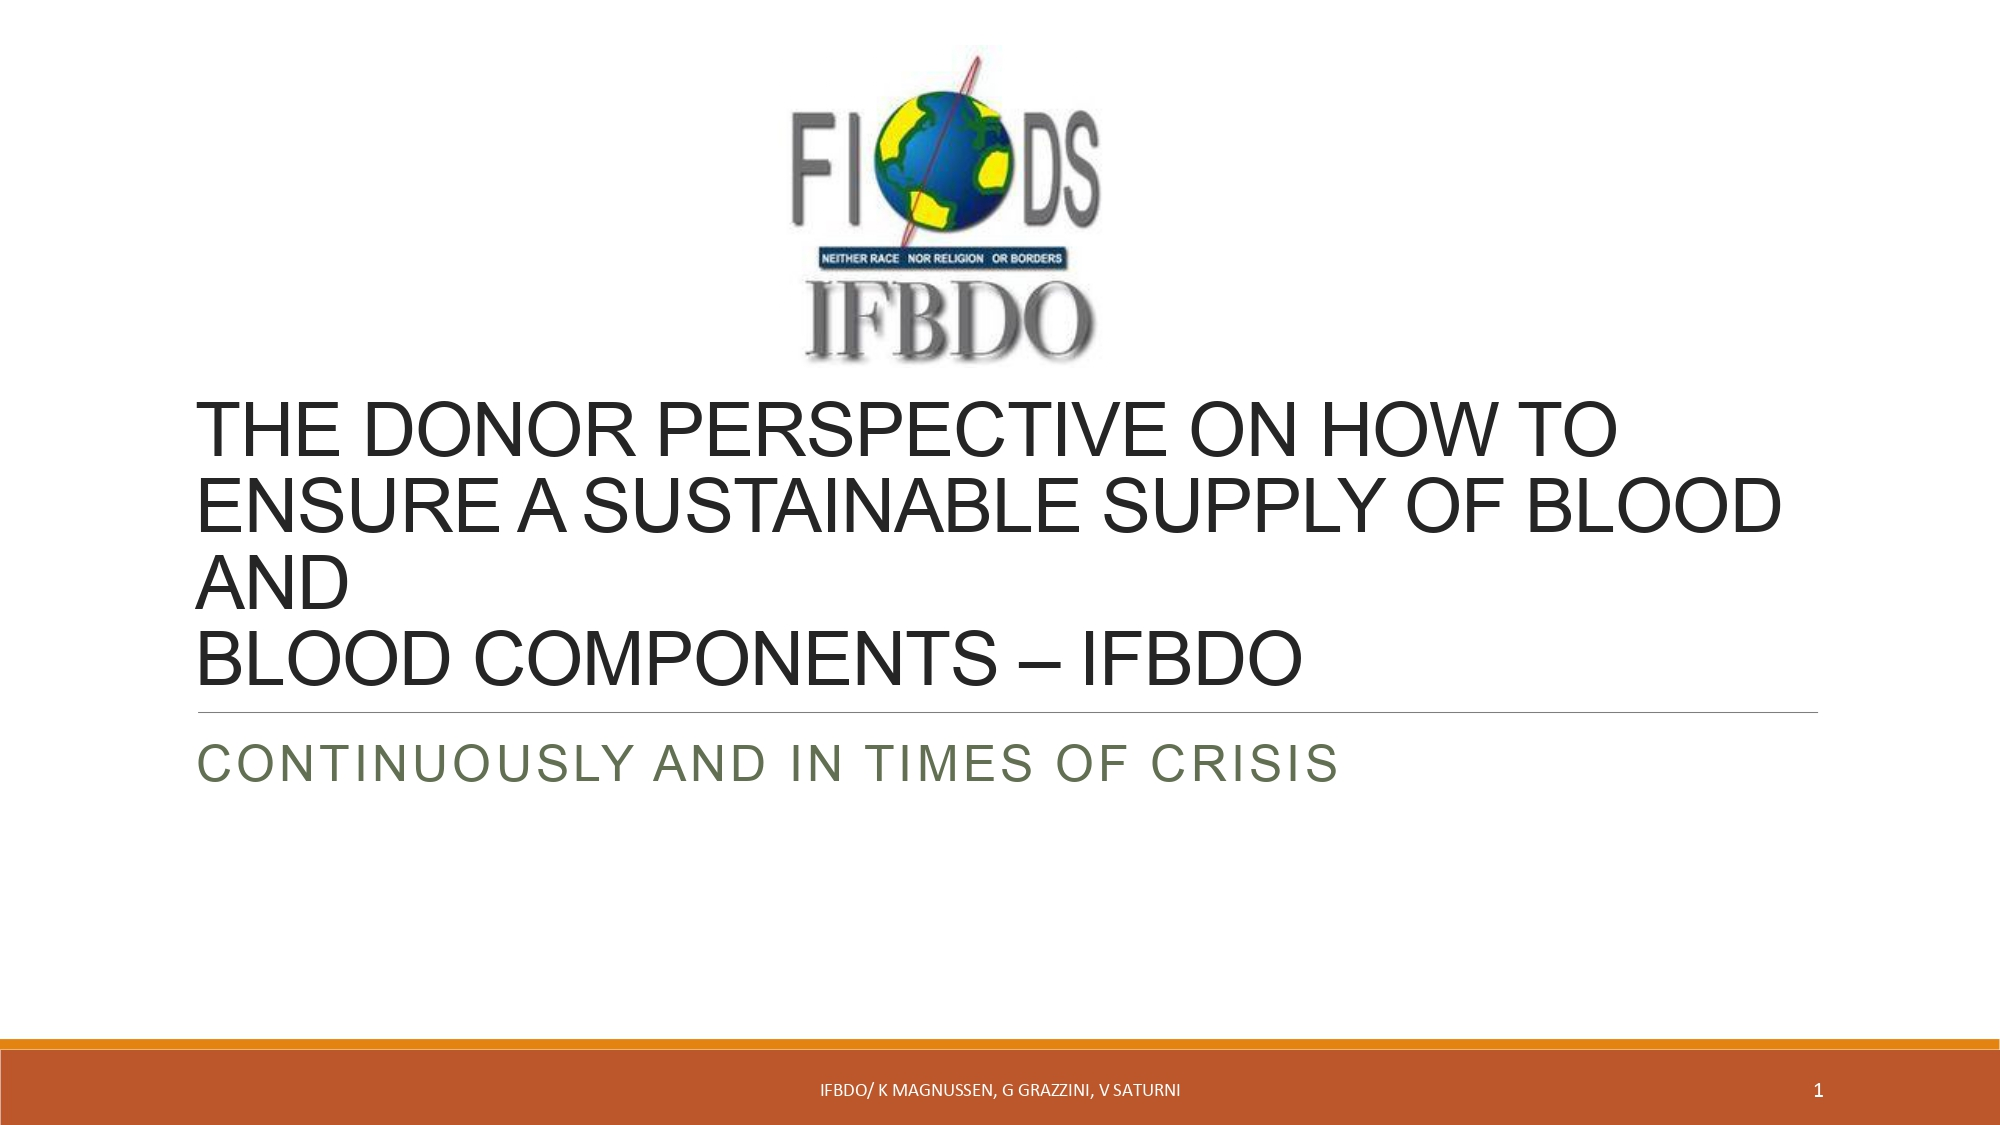 THE DONOR PERSPECTIVE ON HOW TO ENSURE A SUSTAINABLE SUPPLY OF BLOOD AND BLOOD COMPONENTS